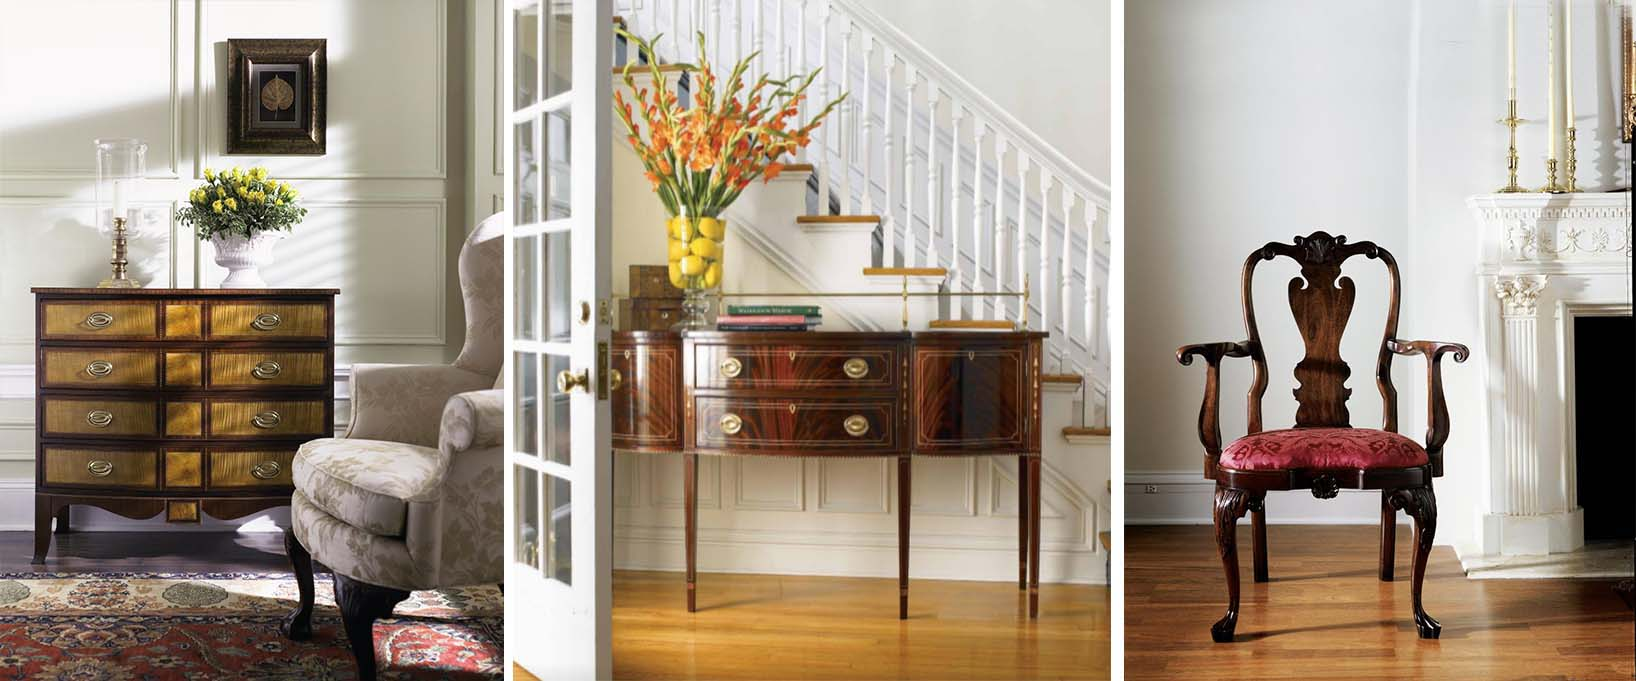 Traditional Home With Hepplewhite Sideboard And Queen Anne Chair